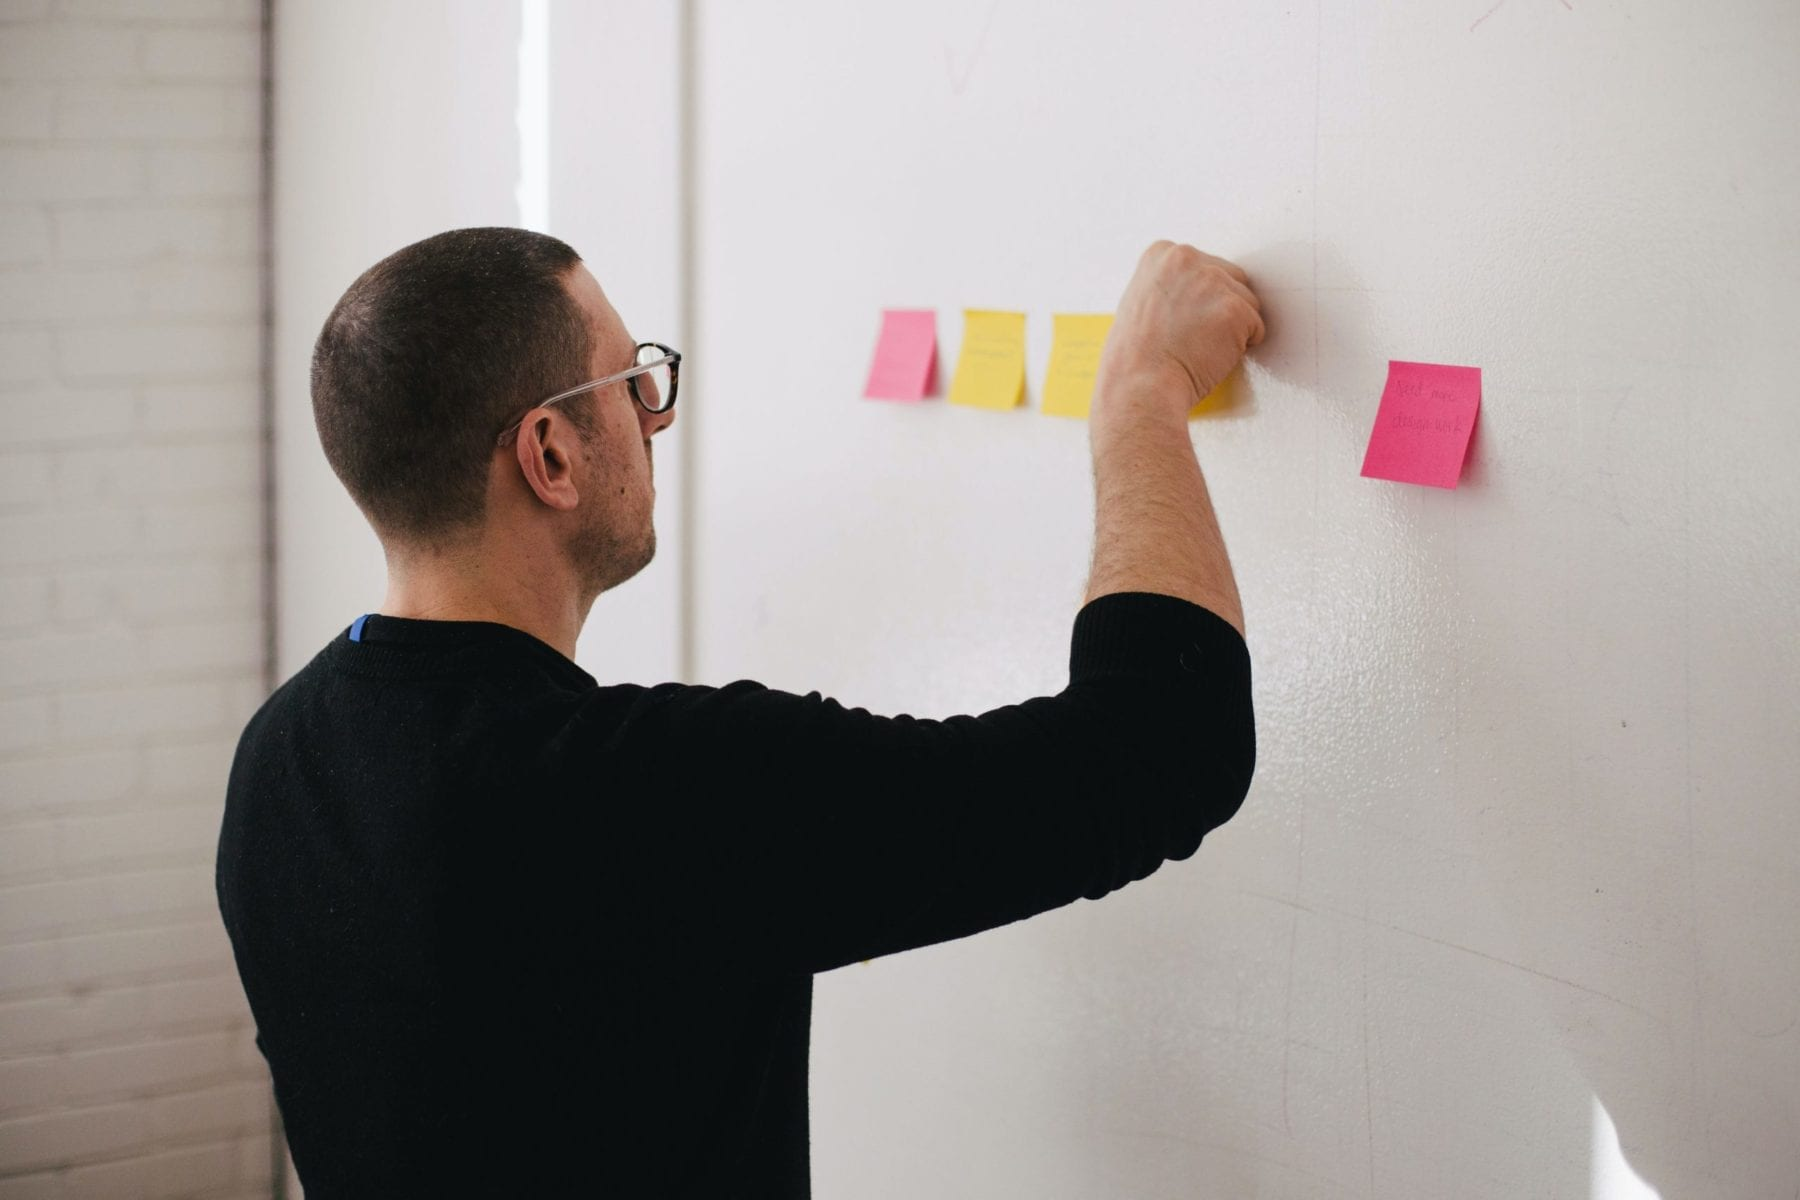 MindMeister allows for realtime collaboration, brainstorming